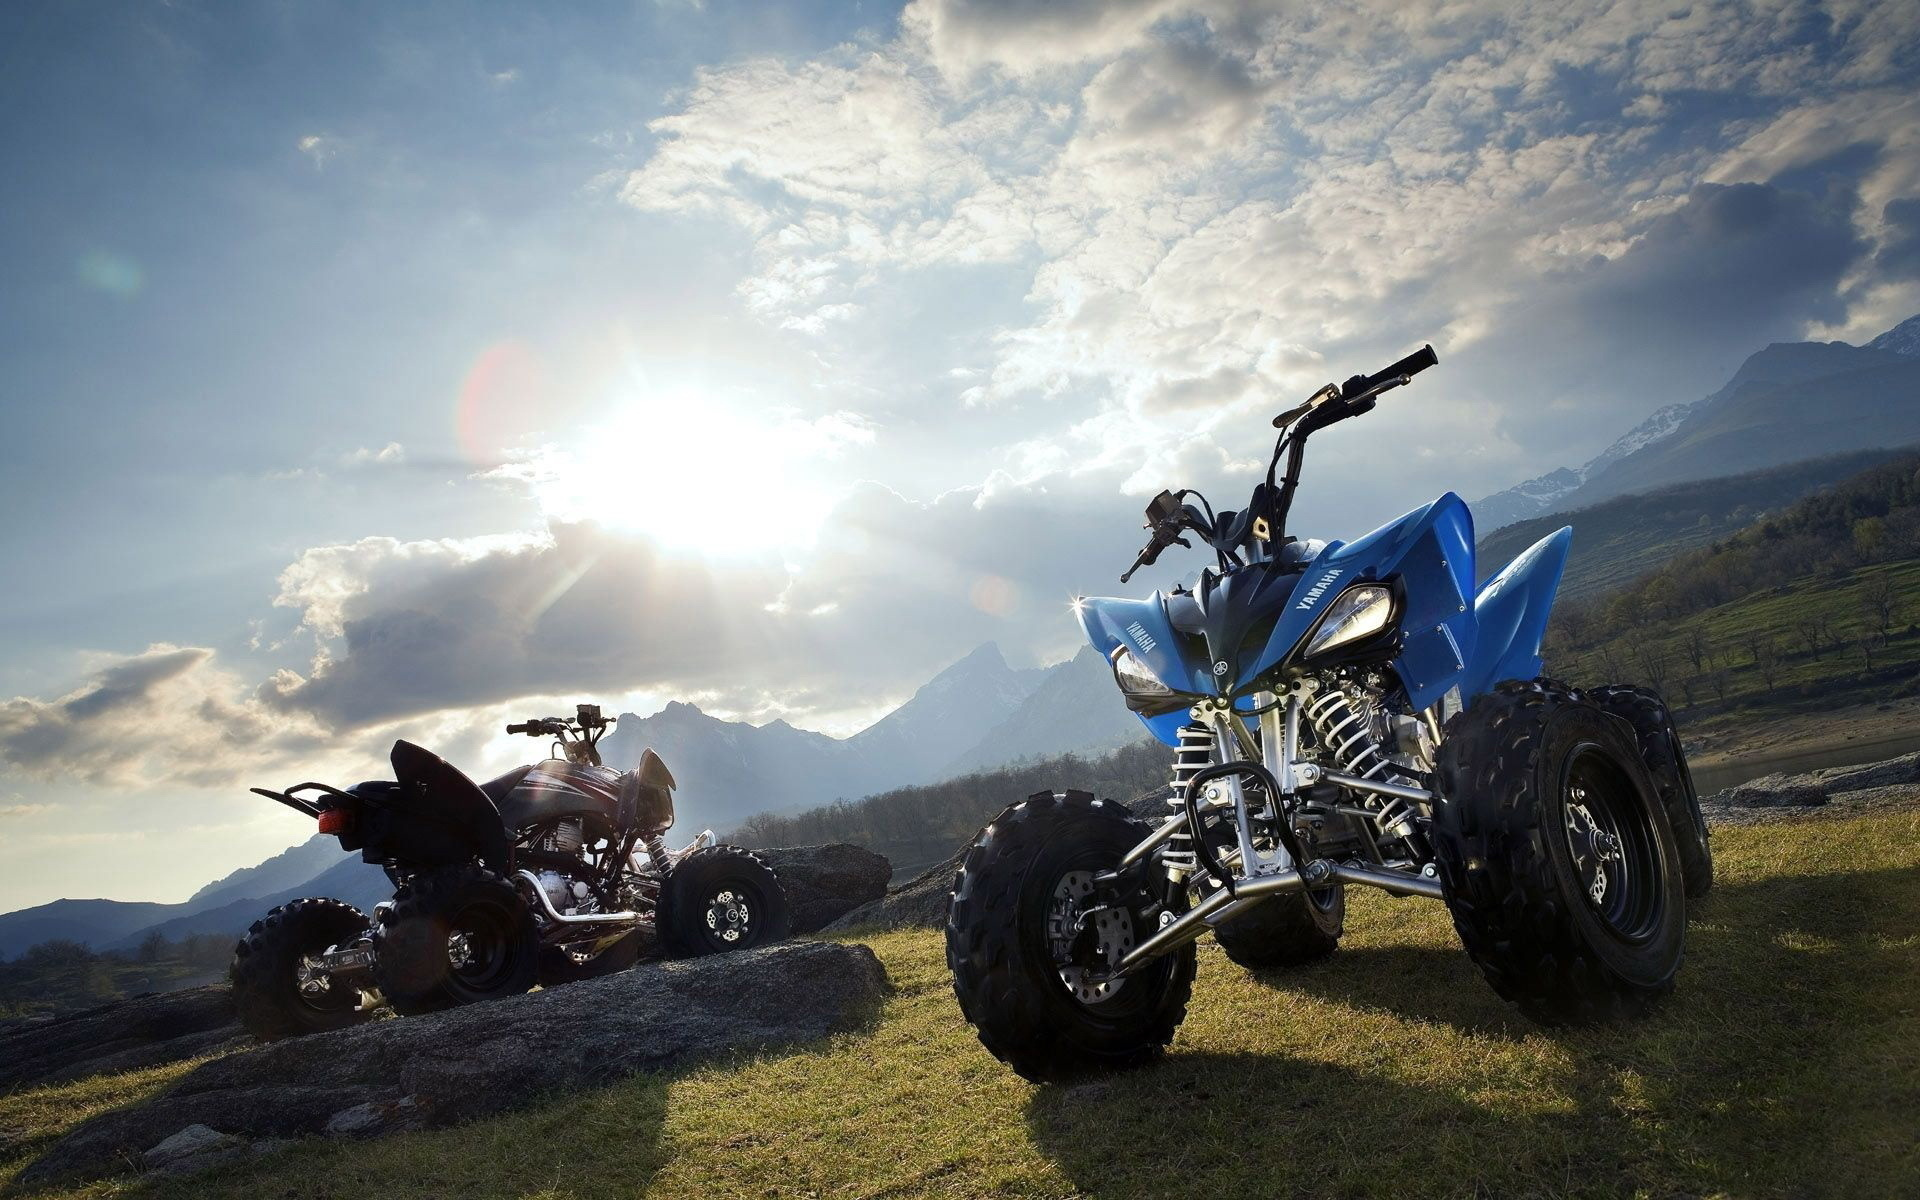 Download this Quad Bike Desktop Wallpaper in High Resolution 1920x1200